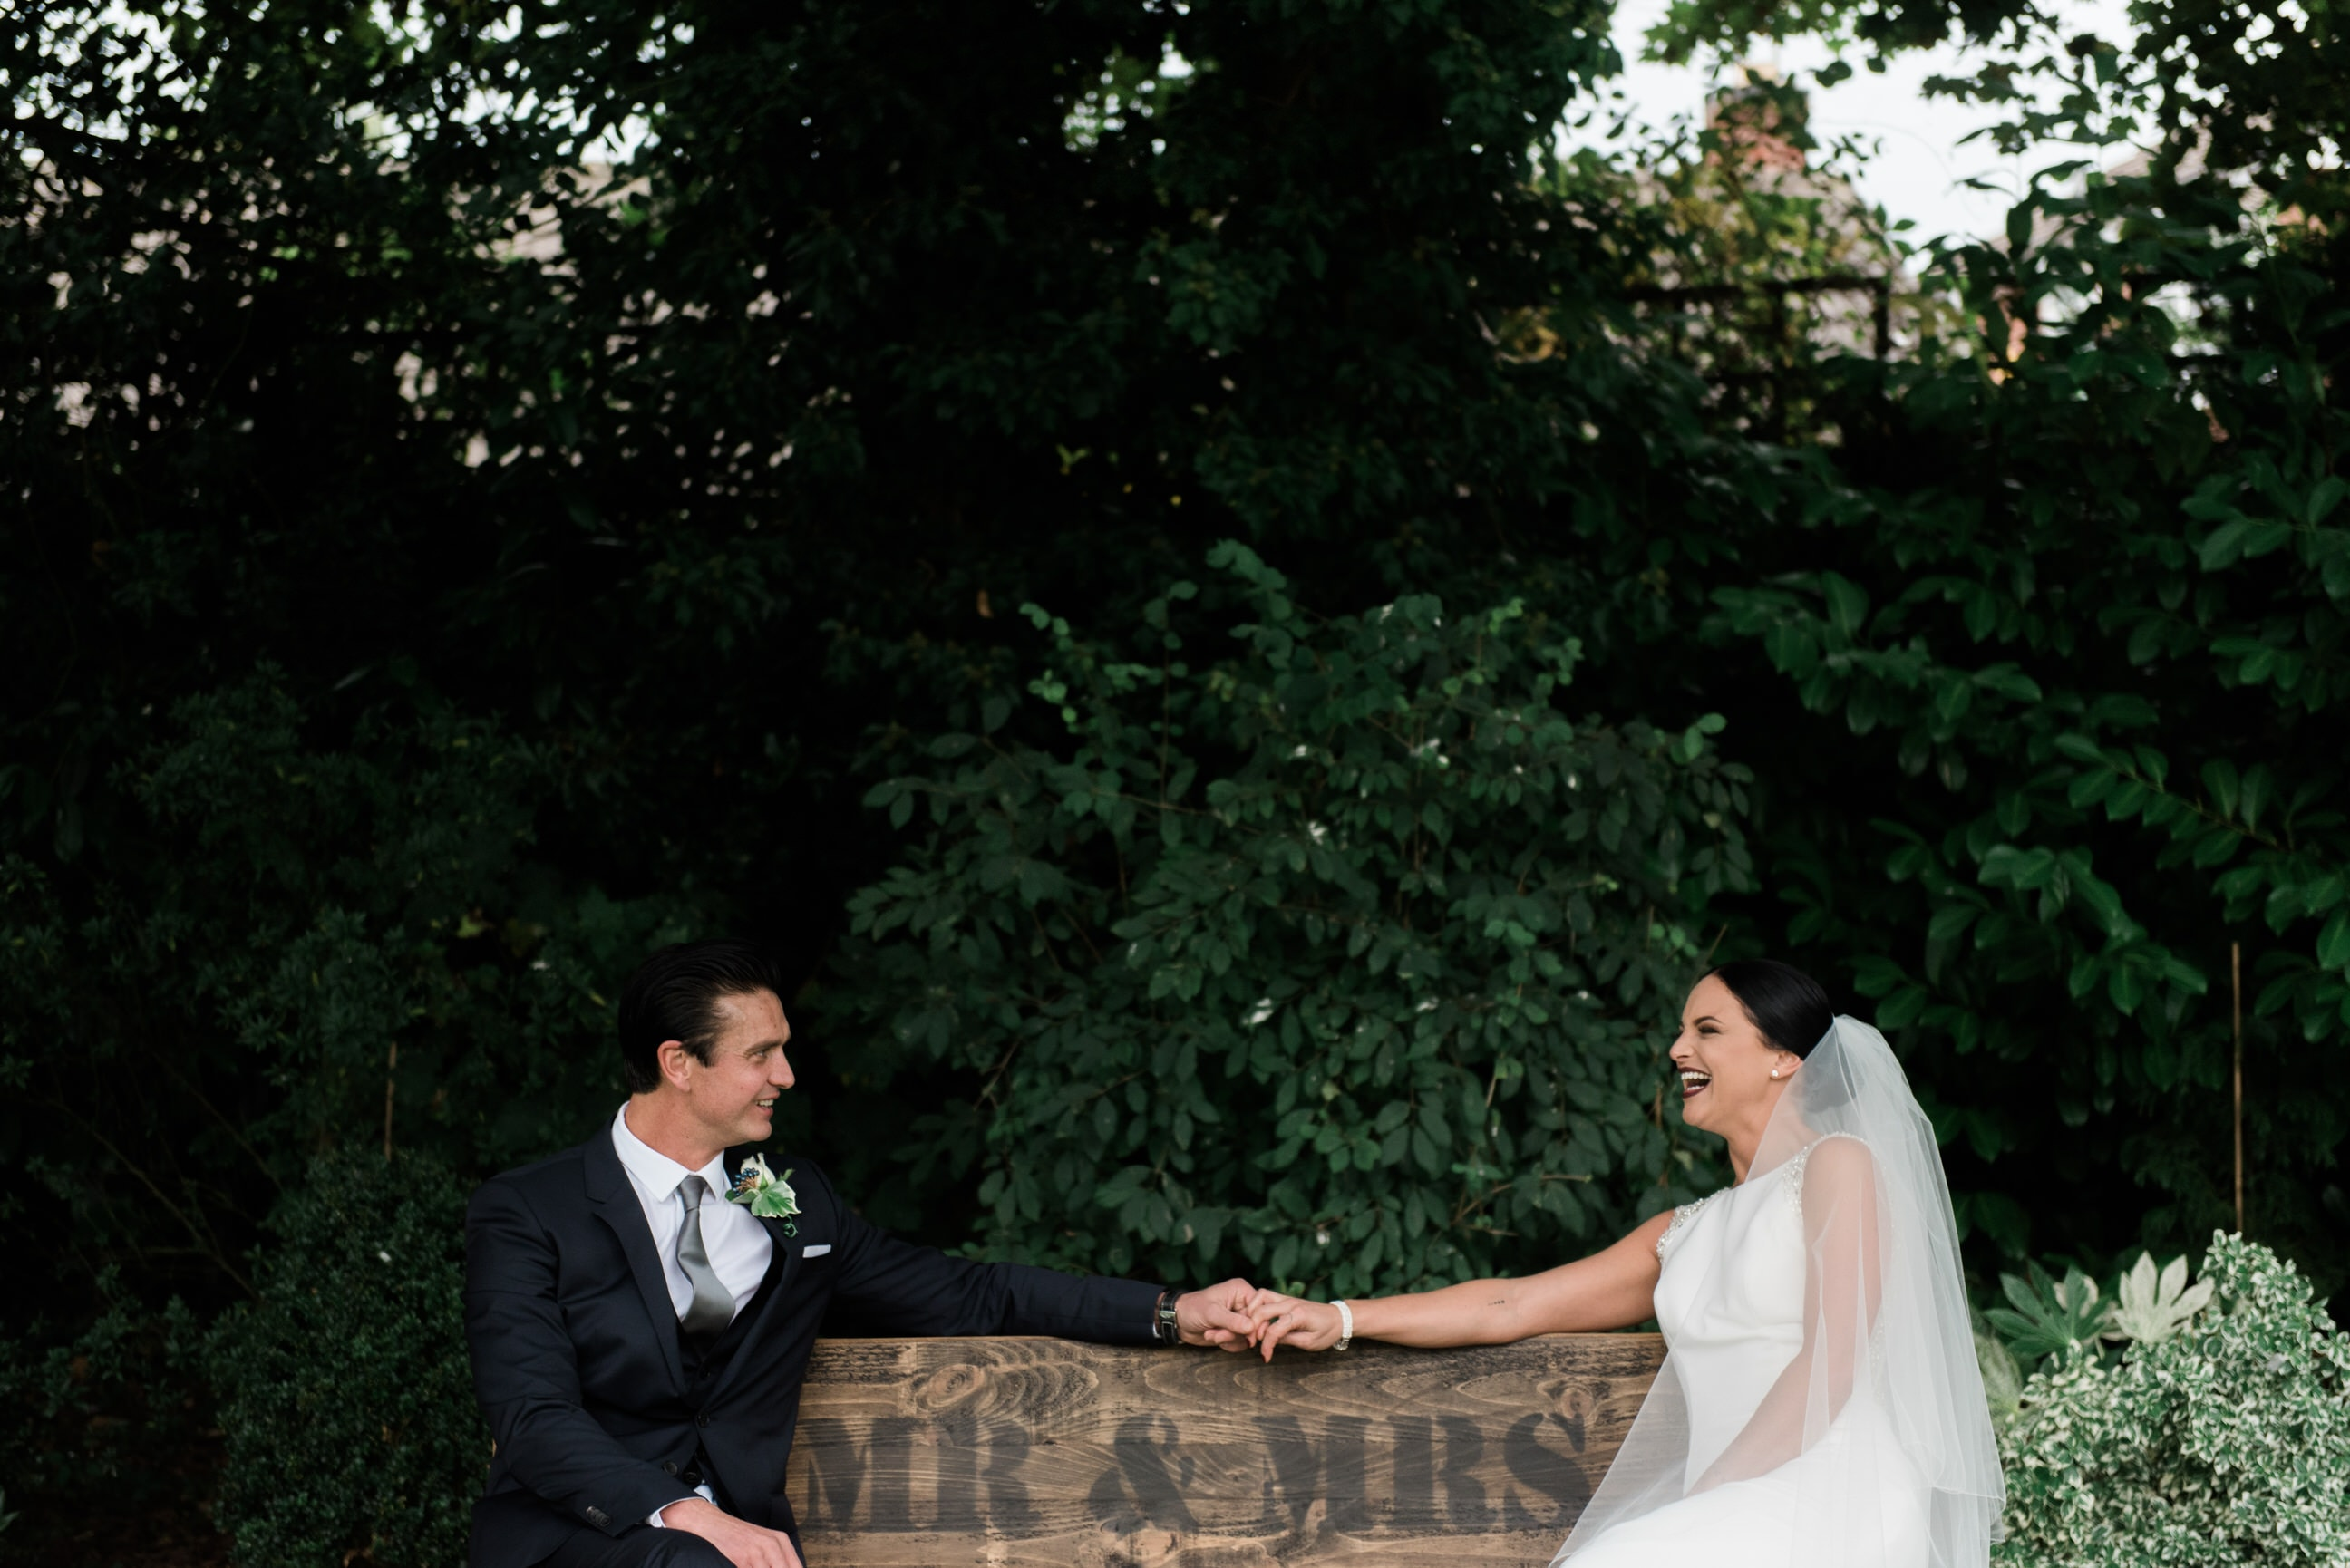 Bride and groom sat on bench laughing together